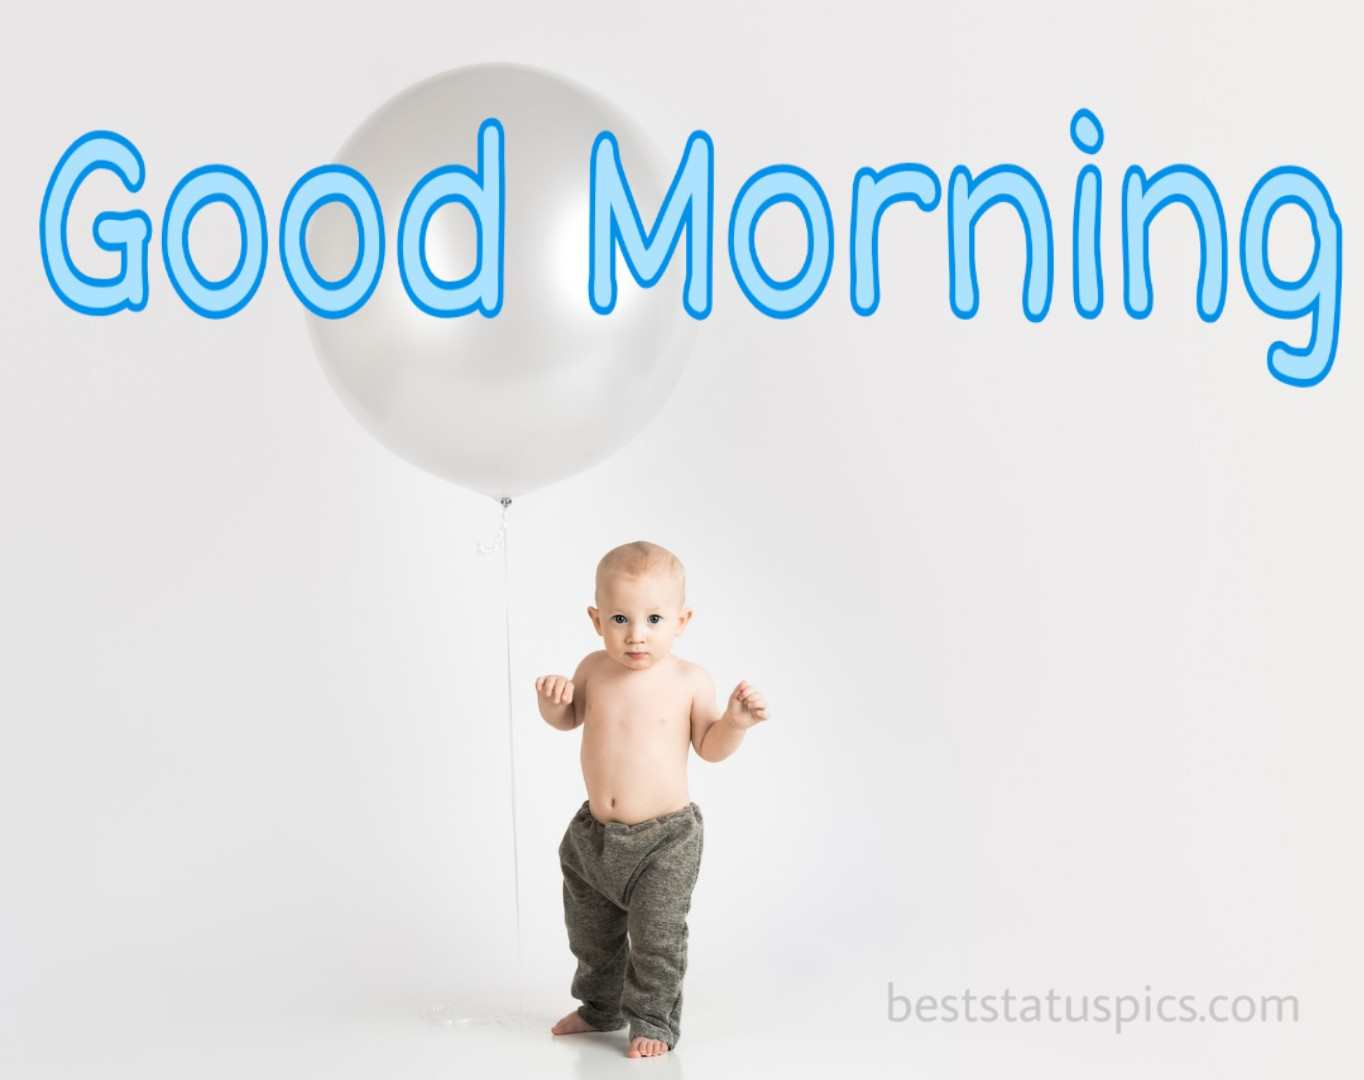 Good morning kids image for whatsapp facebook profile